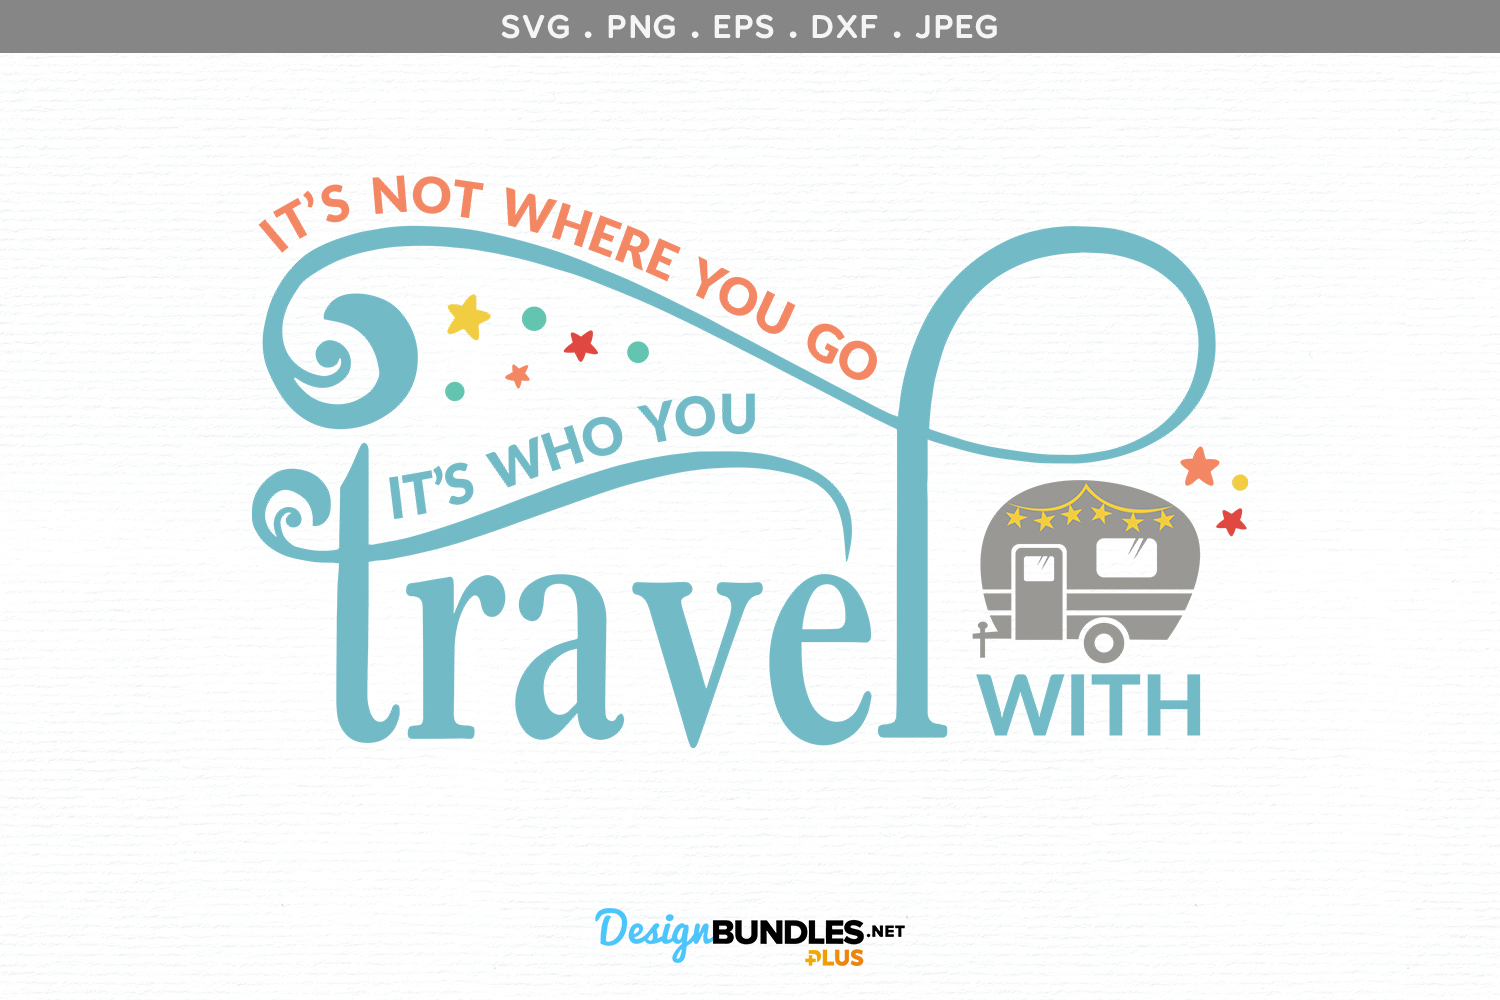 It's Not Where You Go, it's Who You Travel With - svg design example image 2